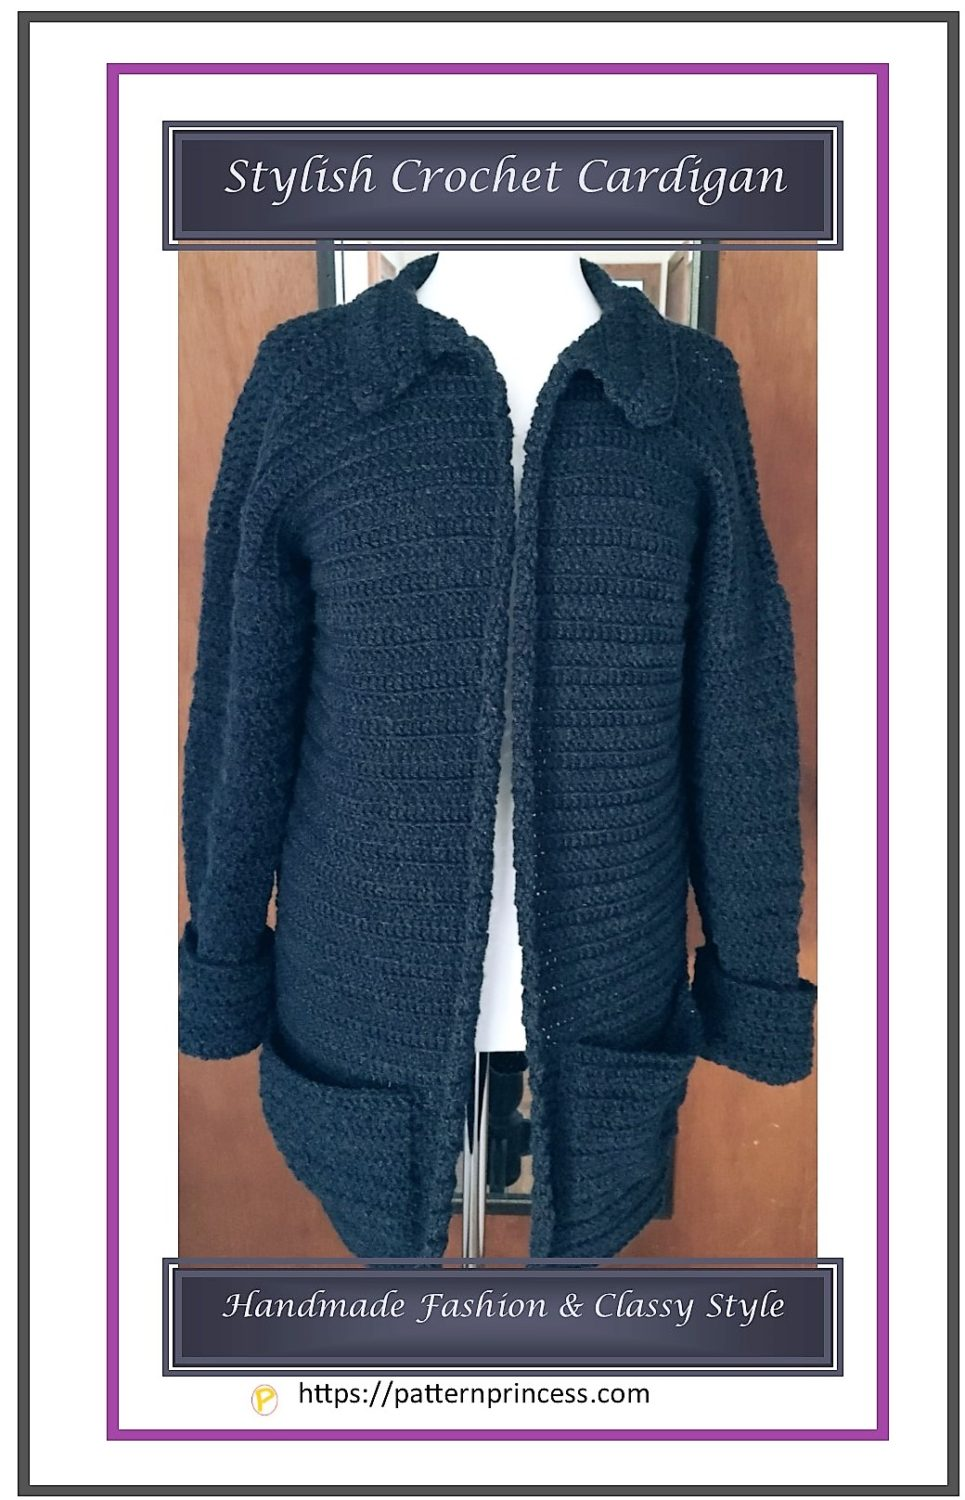 Stylish Crochet Cardigan 1